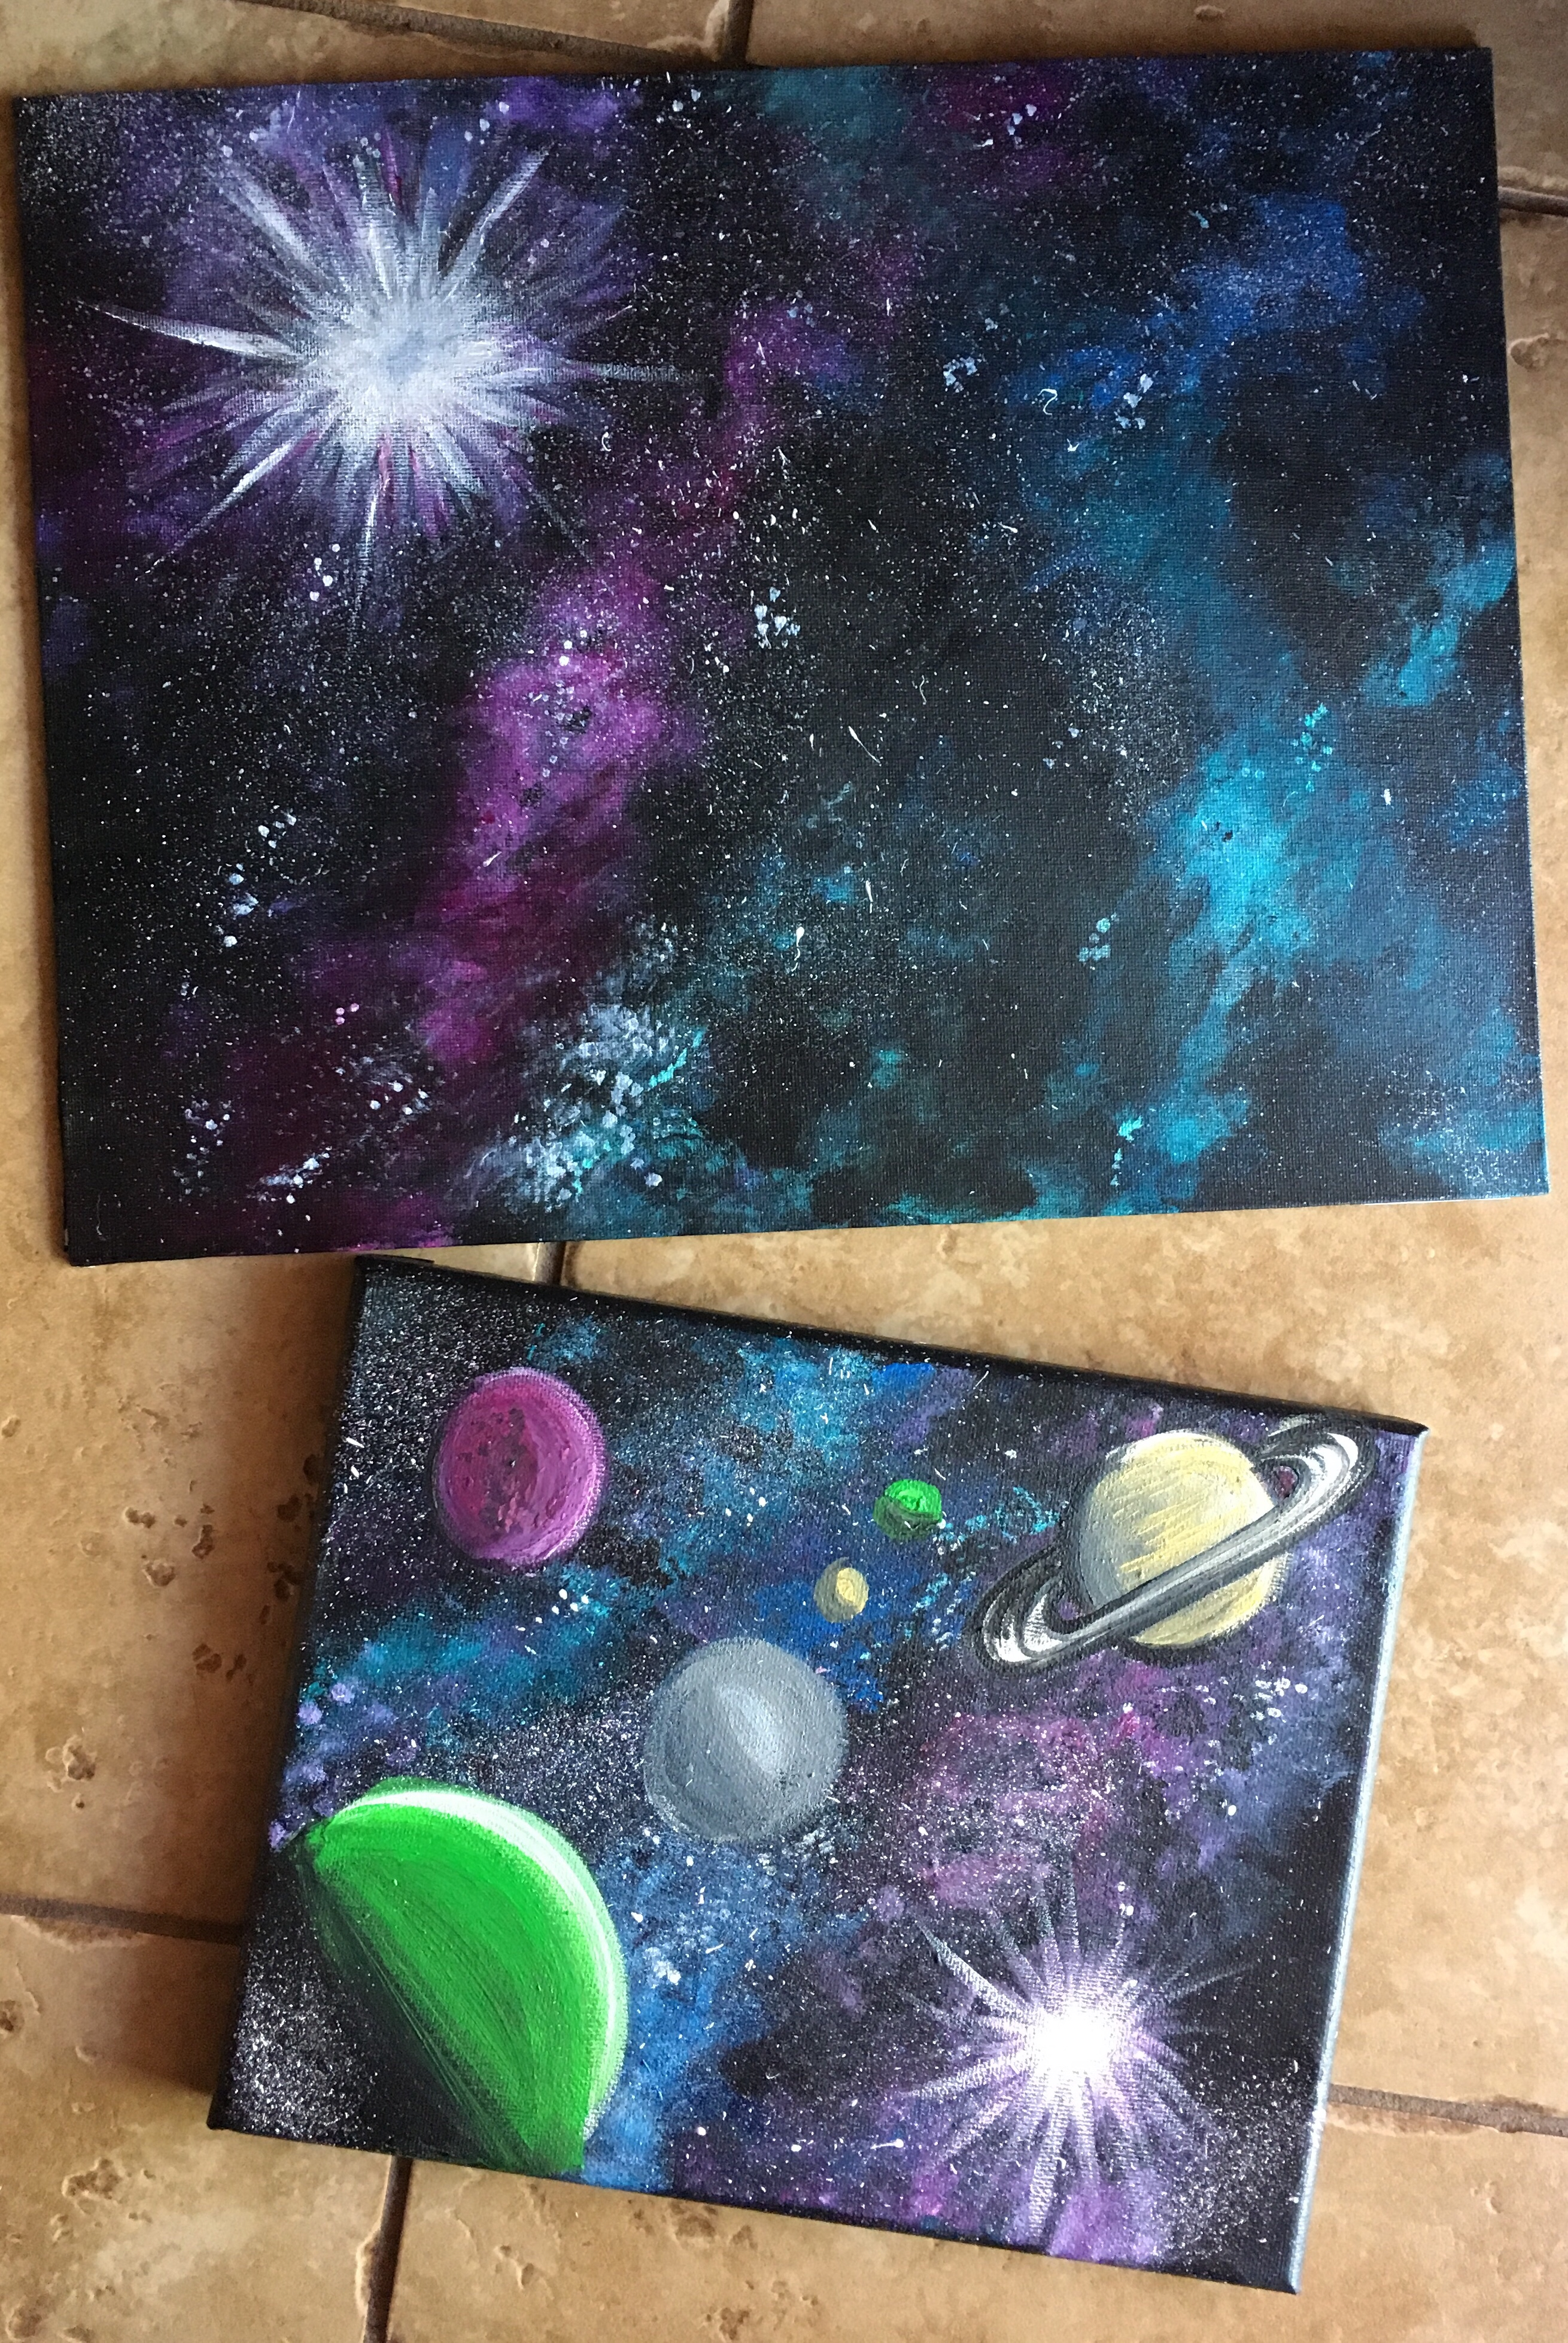 How To Paint A Galaxy - Step By Step Painting For Beginners - photo#19